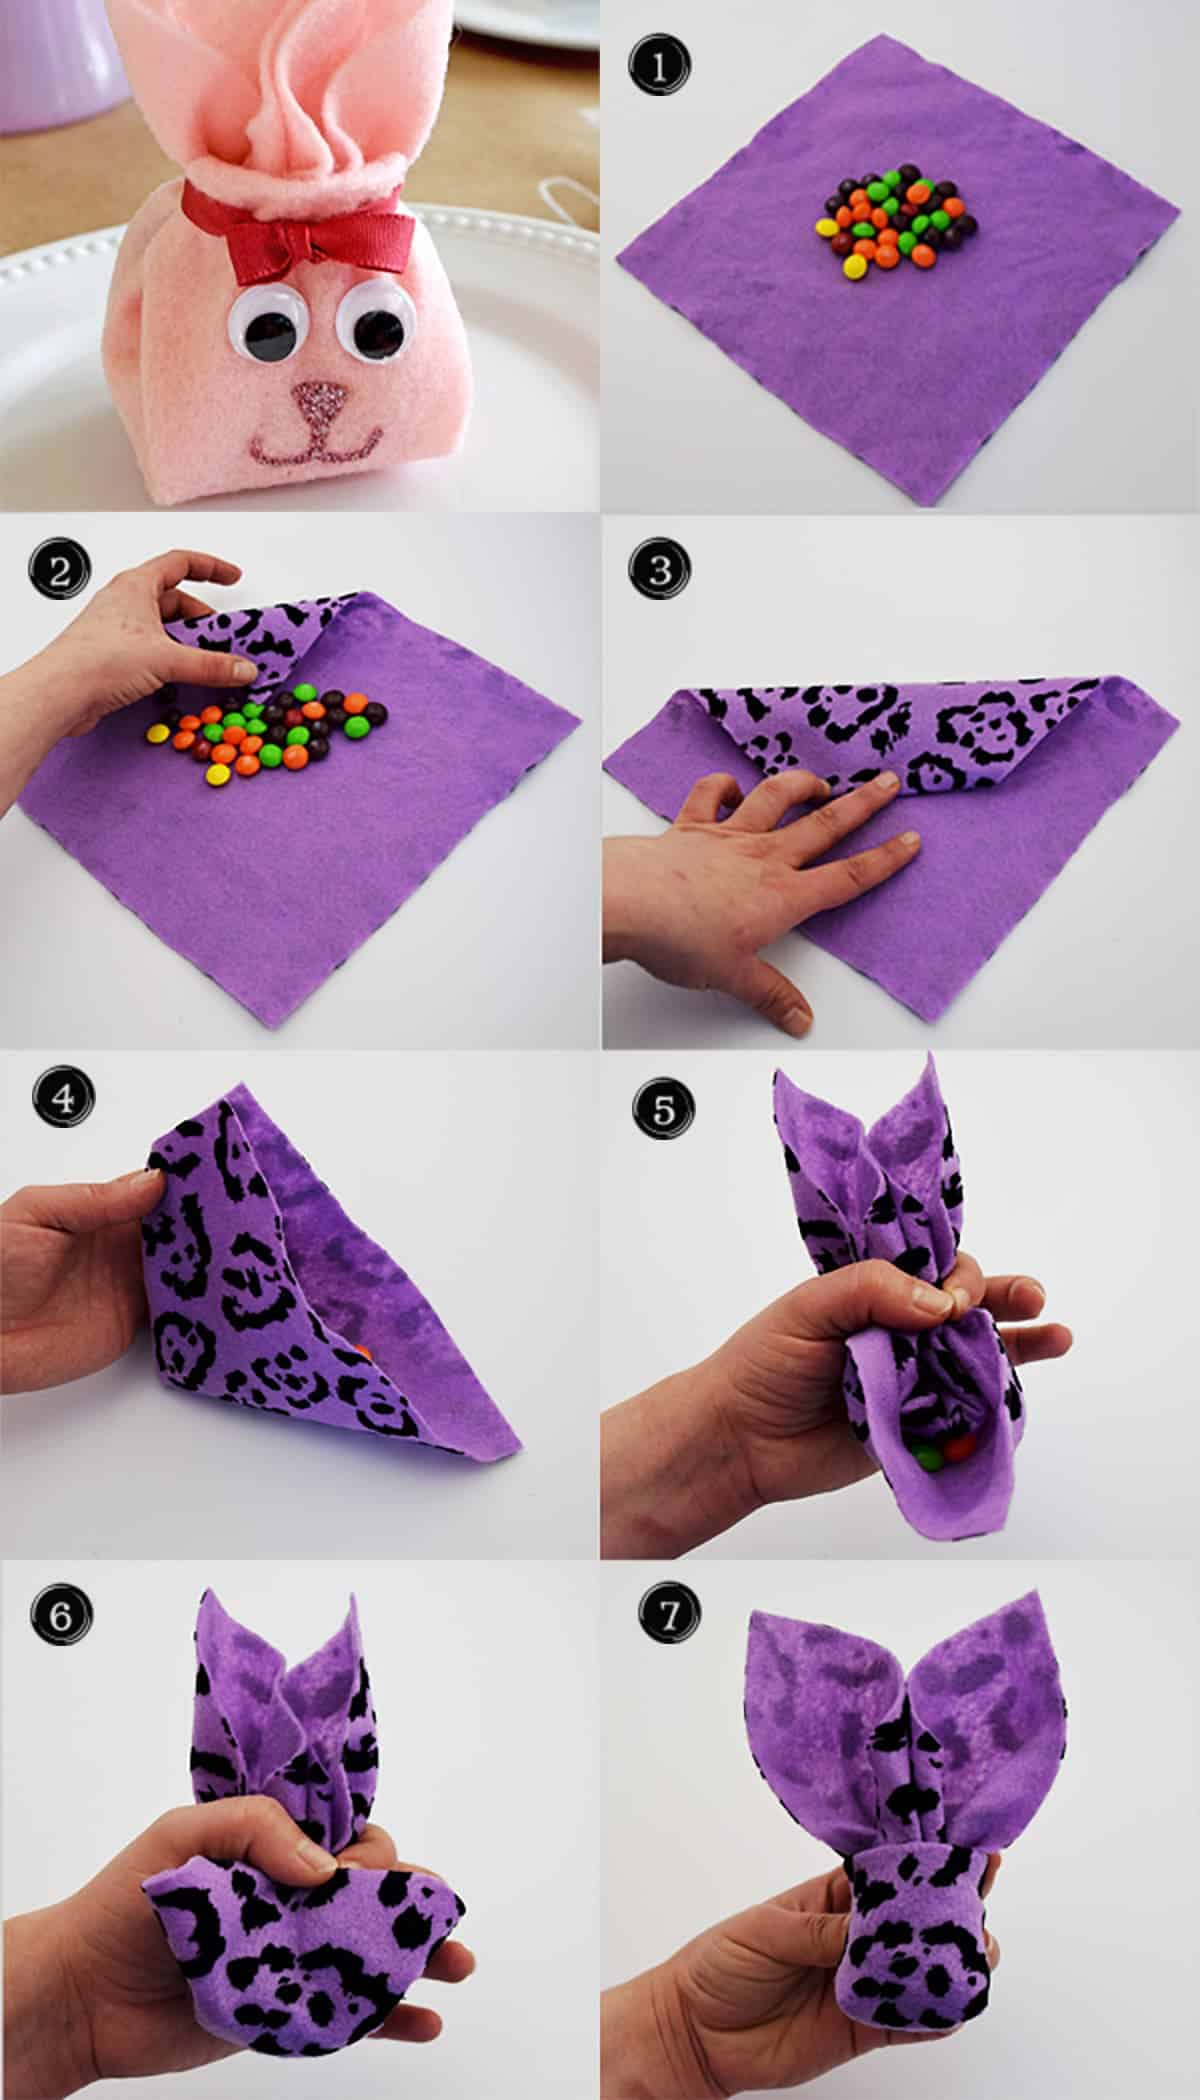 Steps of folding fabric or napkin into a bunny shape filled with candy.